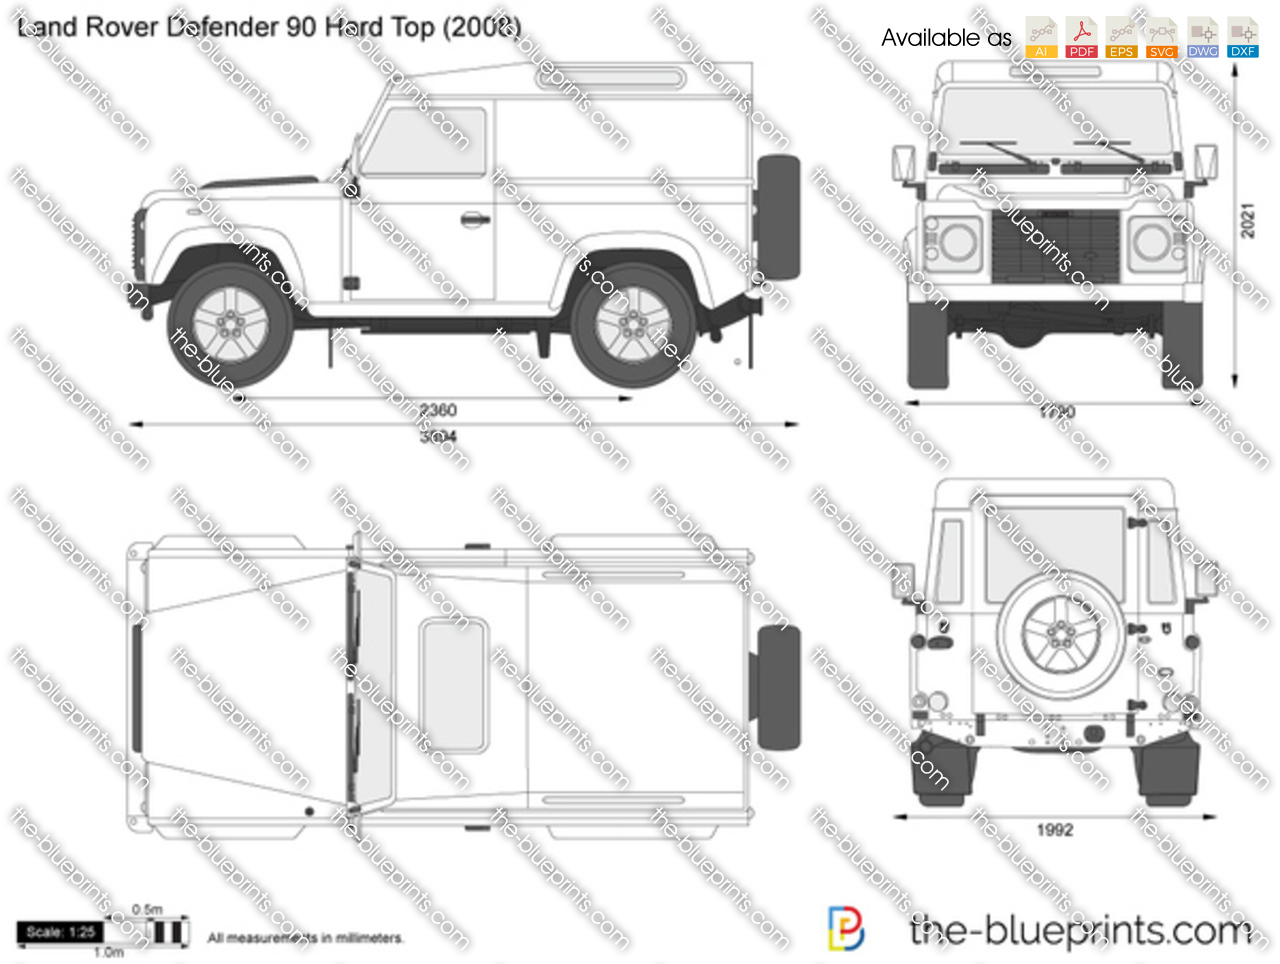 Land Rover Defender 90 Hard Top 1999